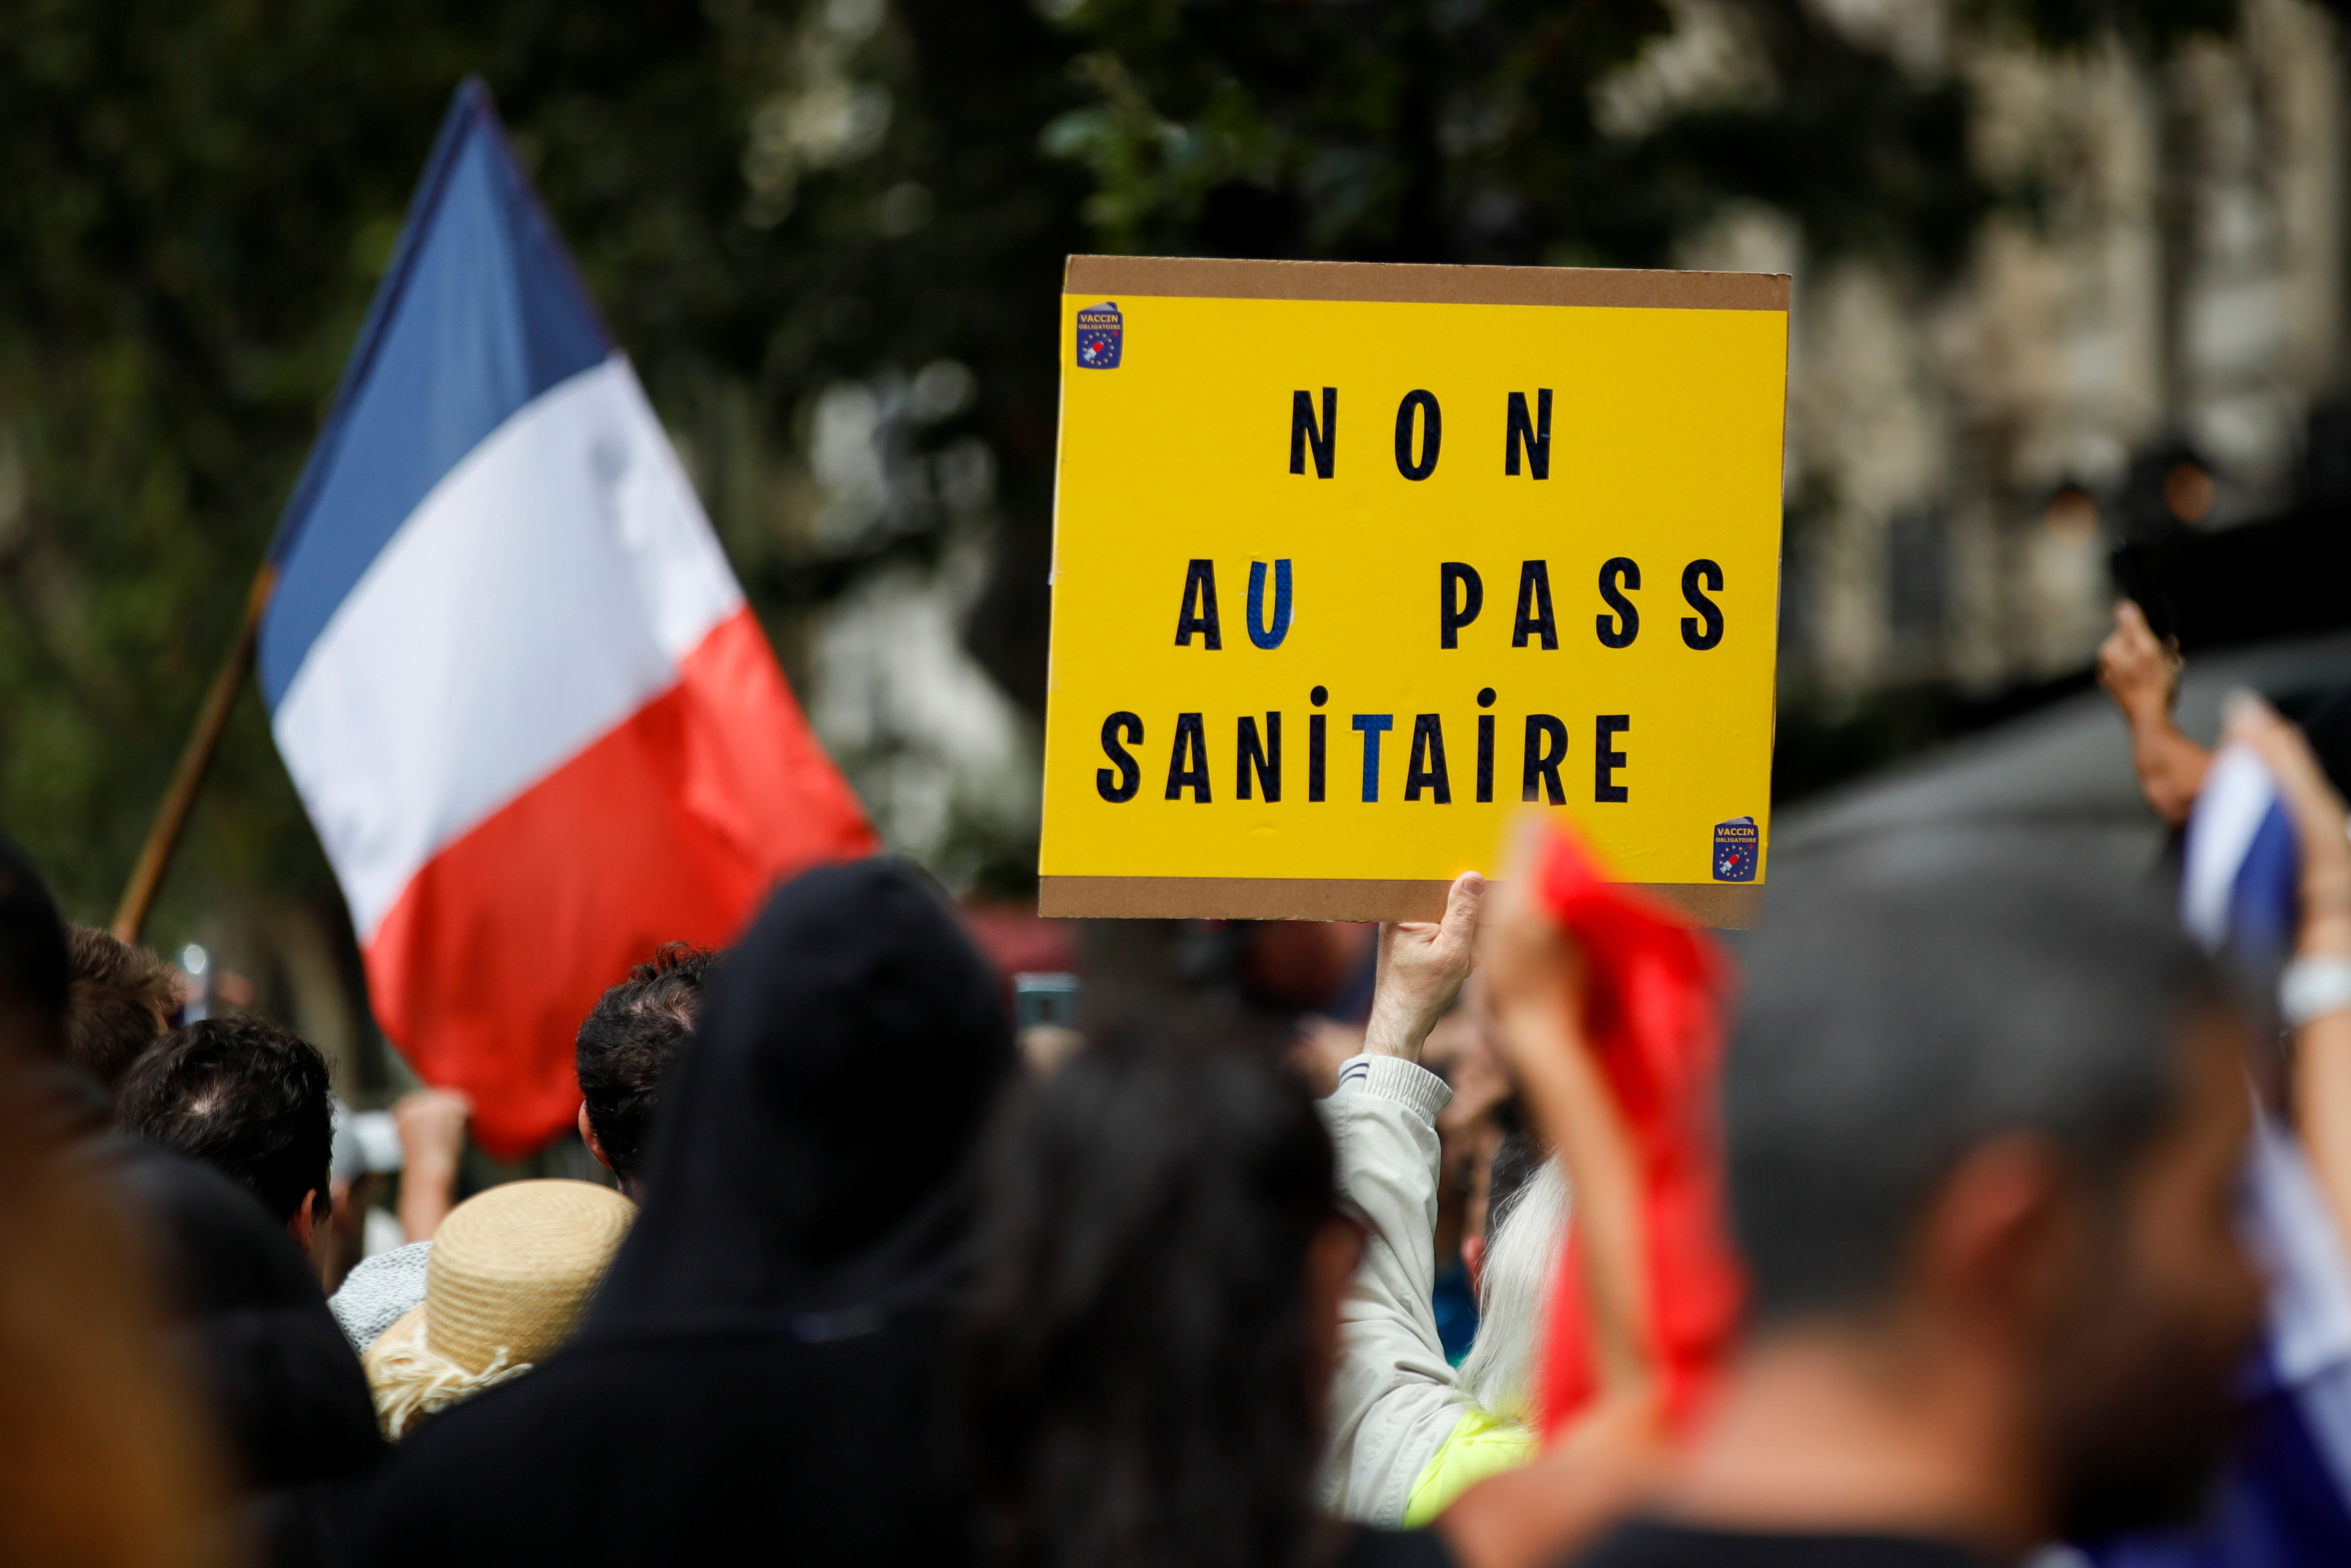 """A protester holds a sign reading """"No to health pass"""" during a demonstration called by the """"yellow vest"""" (gilets jaunes) movement against France's restrictions, including a compulsory health pass, to fight the coronavirus disease (COVID-19) outbreak, in Paris, France, July 31, 2021. REUTERS/Sarah Meyssonnier"""